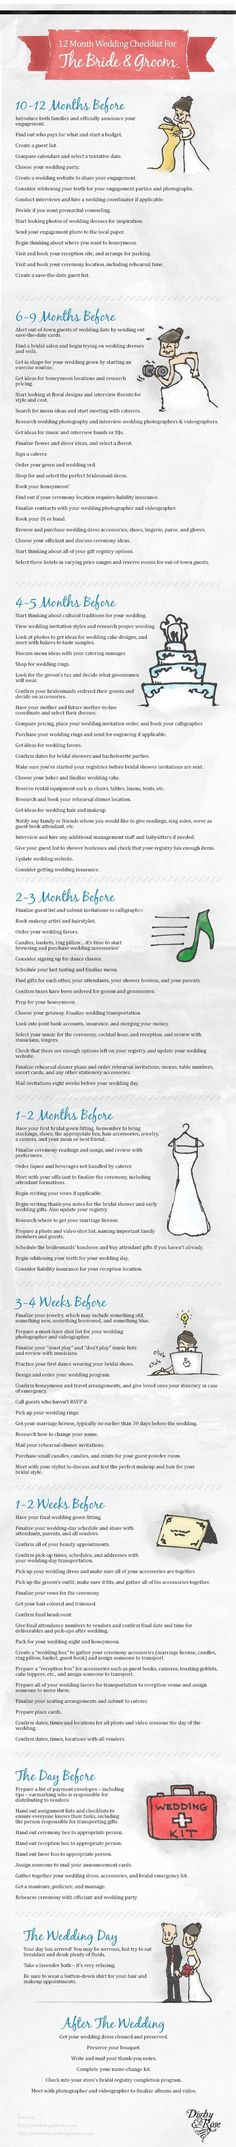 Wedding checklist!!!!!  It's about the same of all of them.  I just think it's good to have one.